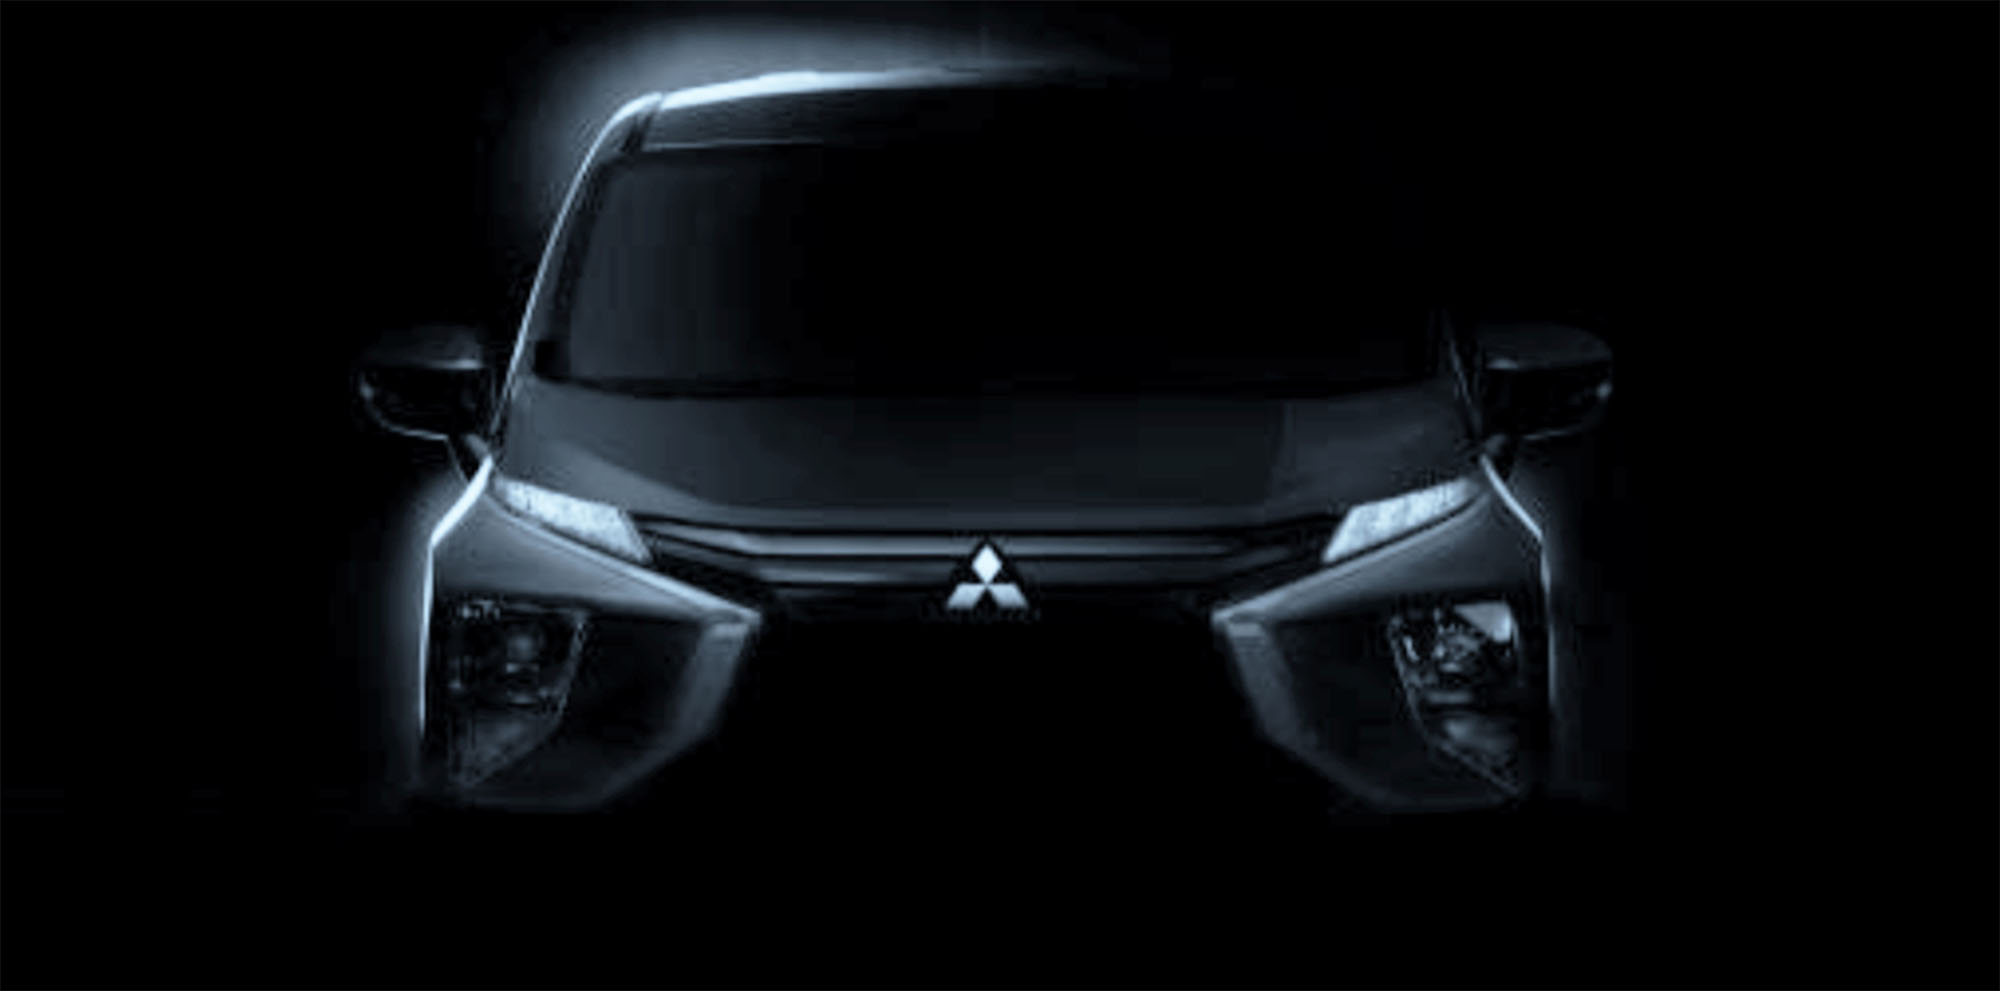 2018 Mitsubishi 'Expander' people mover teased - Photos (1 ...